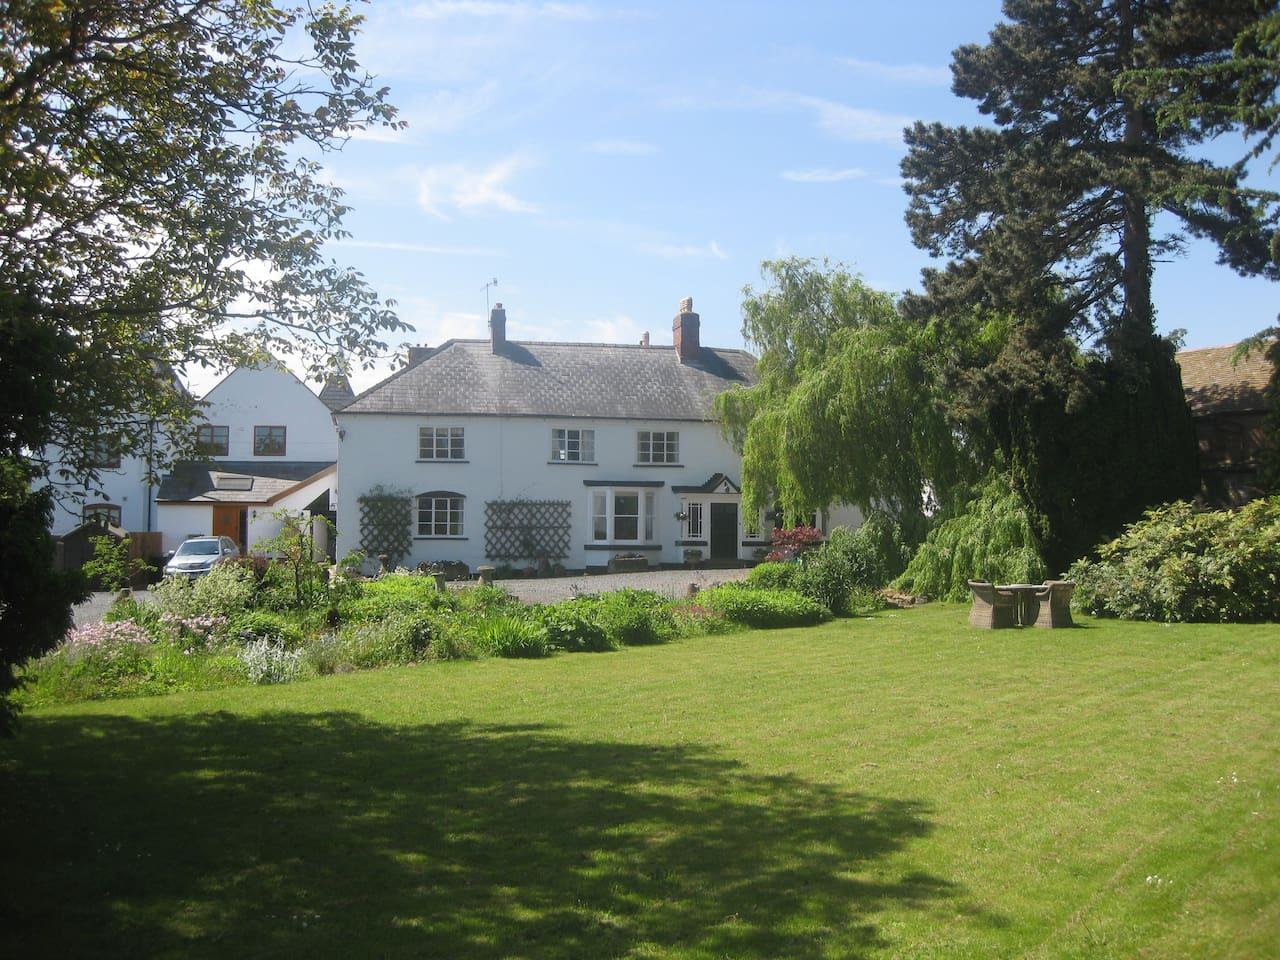 Chirkenhill Farm B&B This listing is for one bedroom sleeping two people. The room can be made up as a kingsized bed or twin beds.  Two other rooms are available in the farmhouse